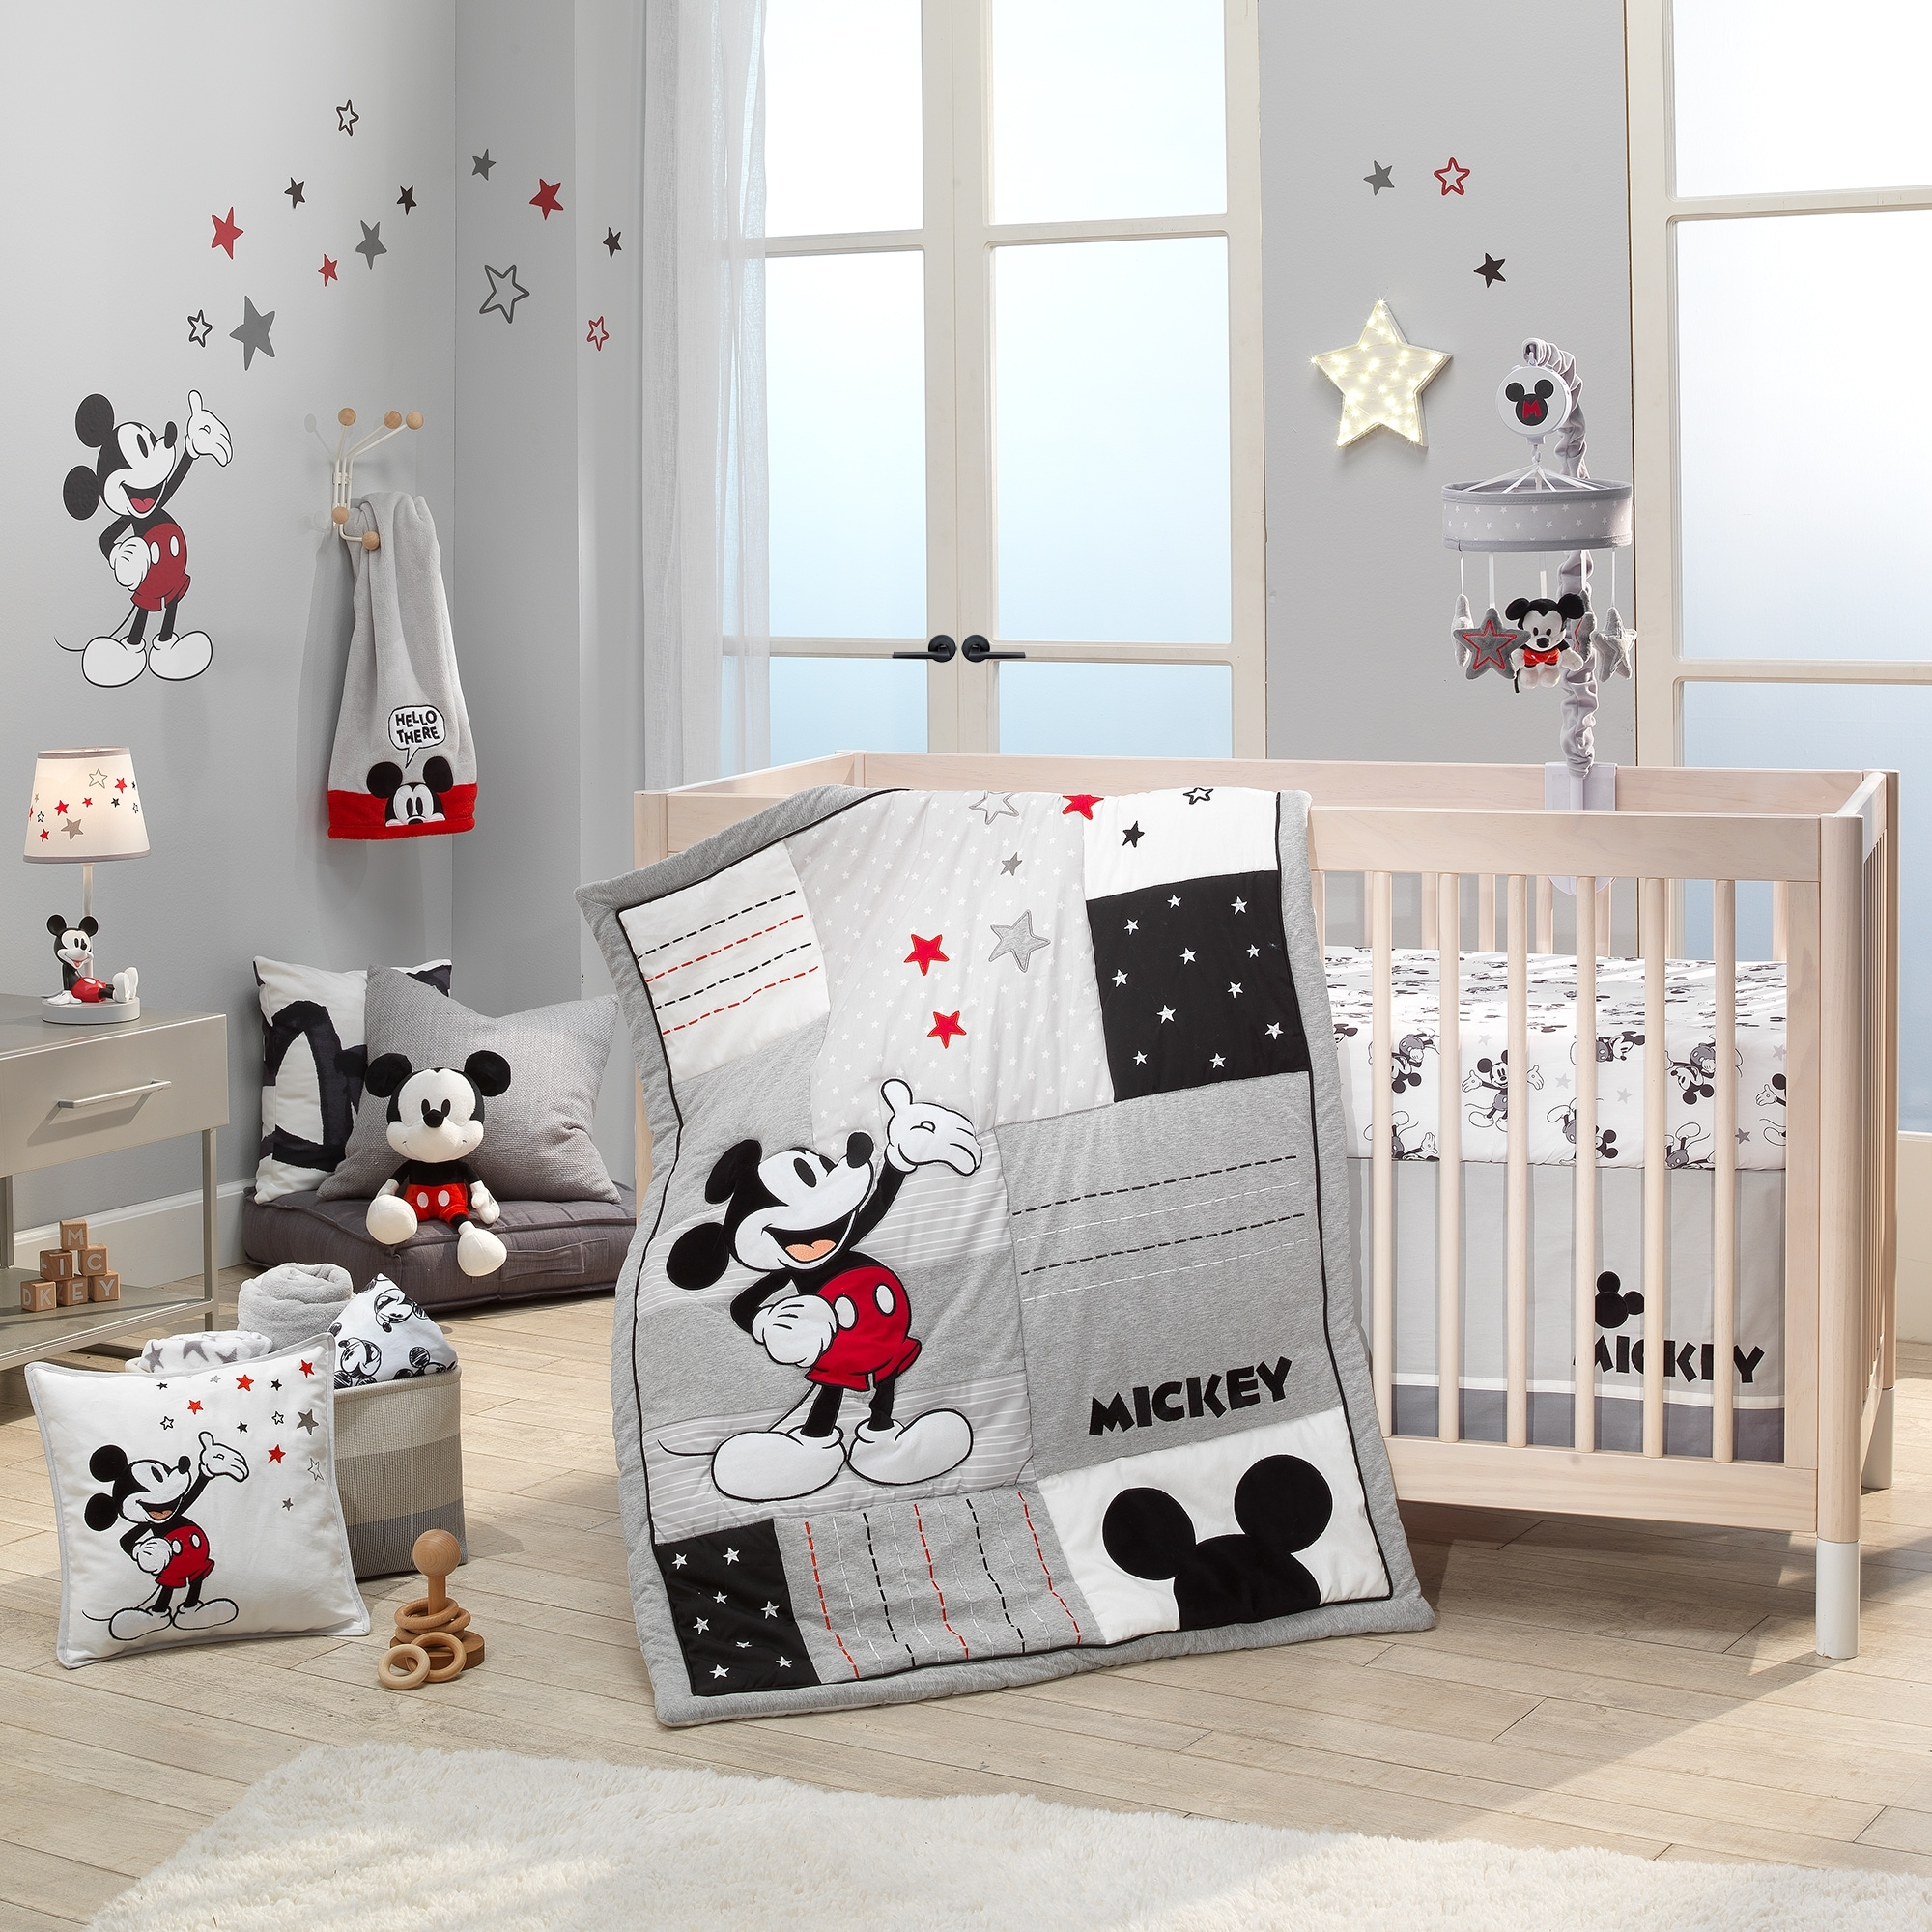 Lambs Ivy Disney Baby Magical Mickey Mouse 3 Piece Crib Bedding Set Gray Overstock 30823159